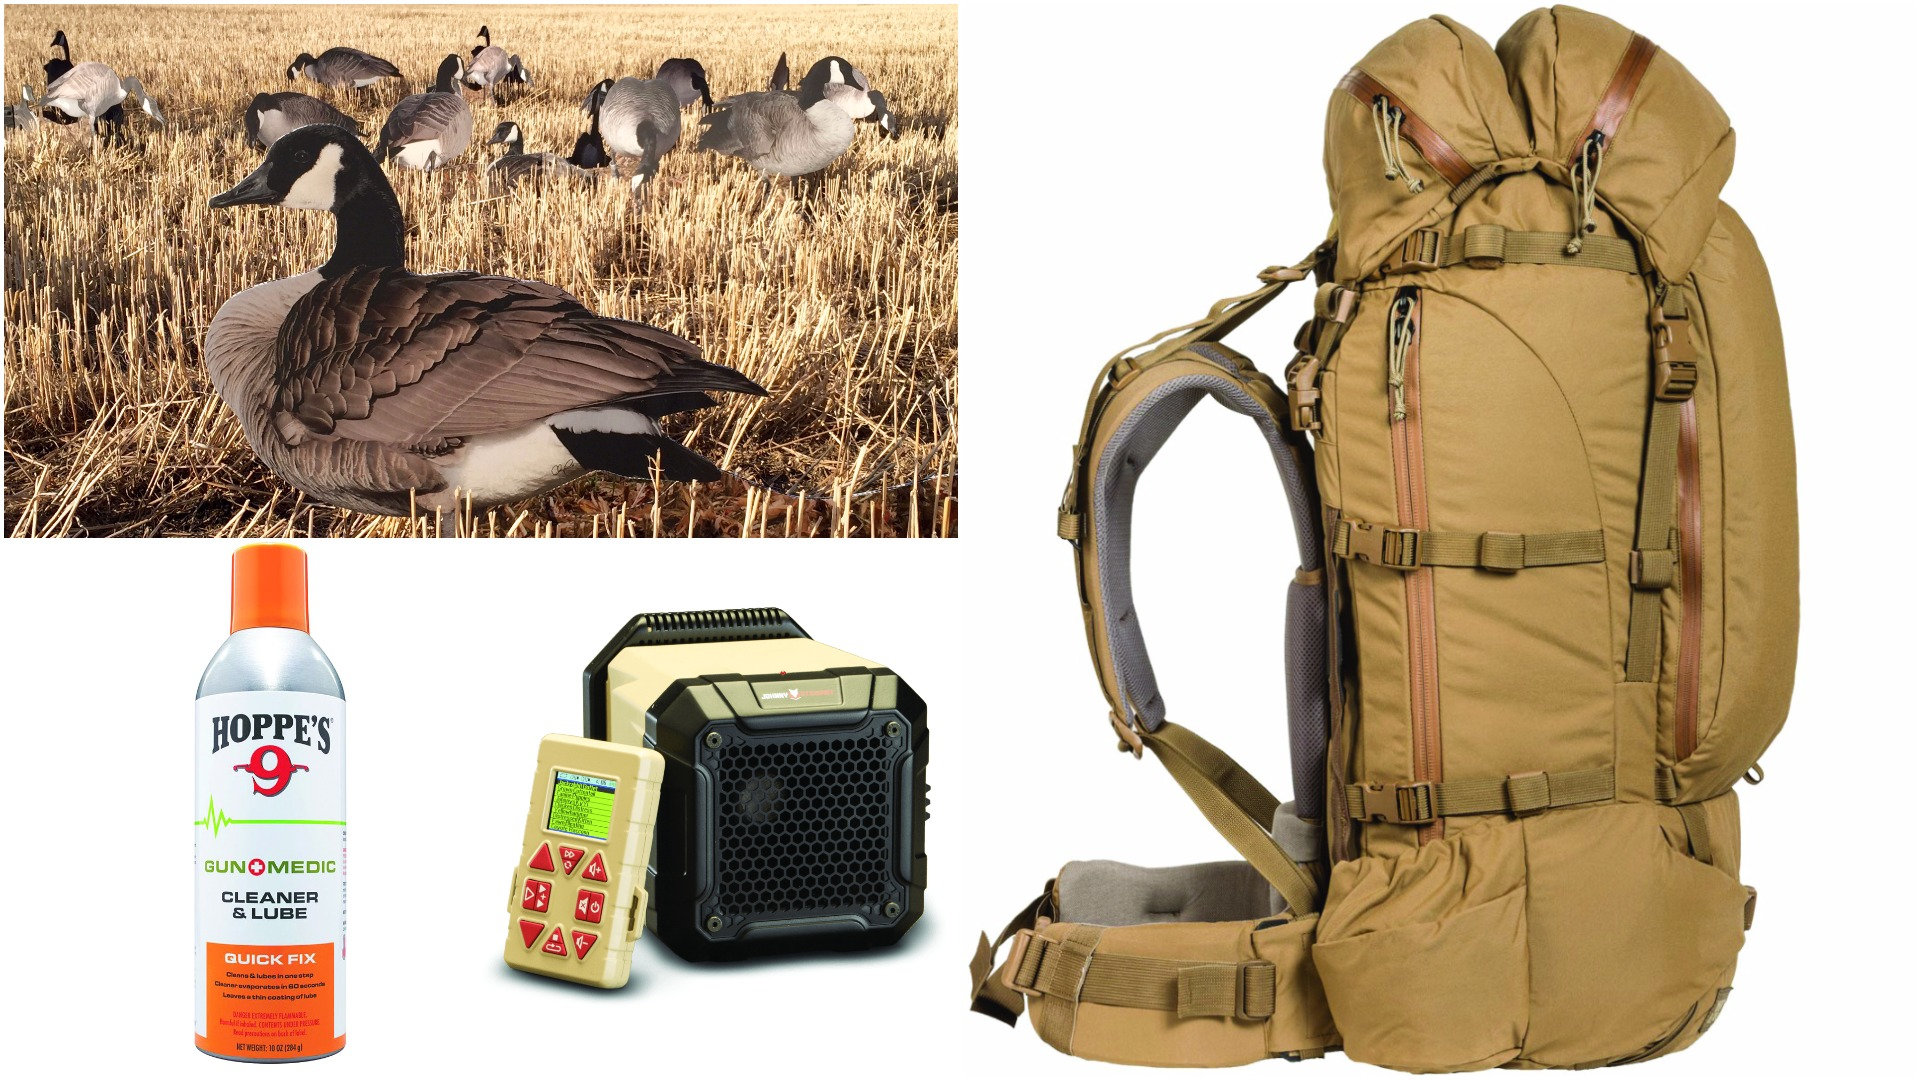 Even more awesome new hunting gear for the upcoming season